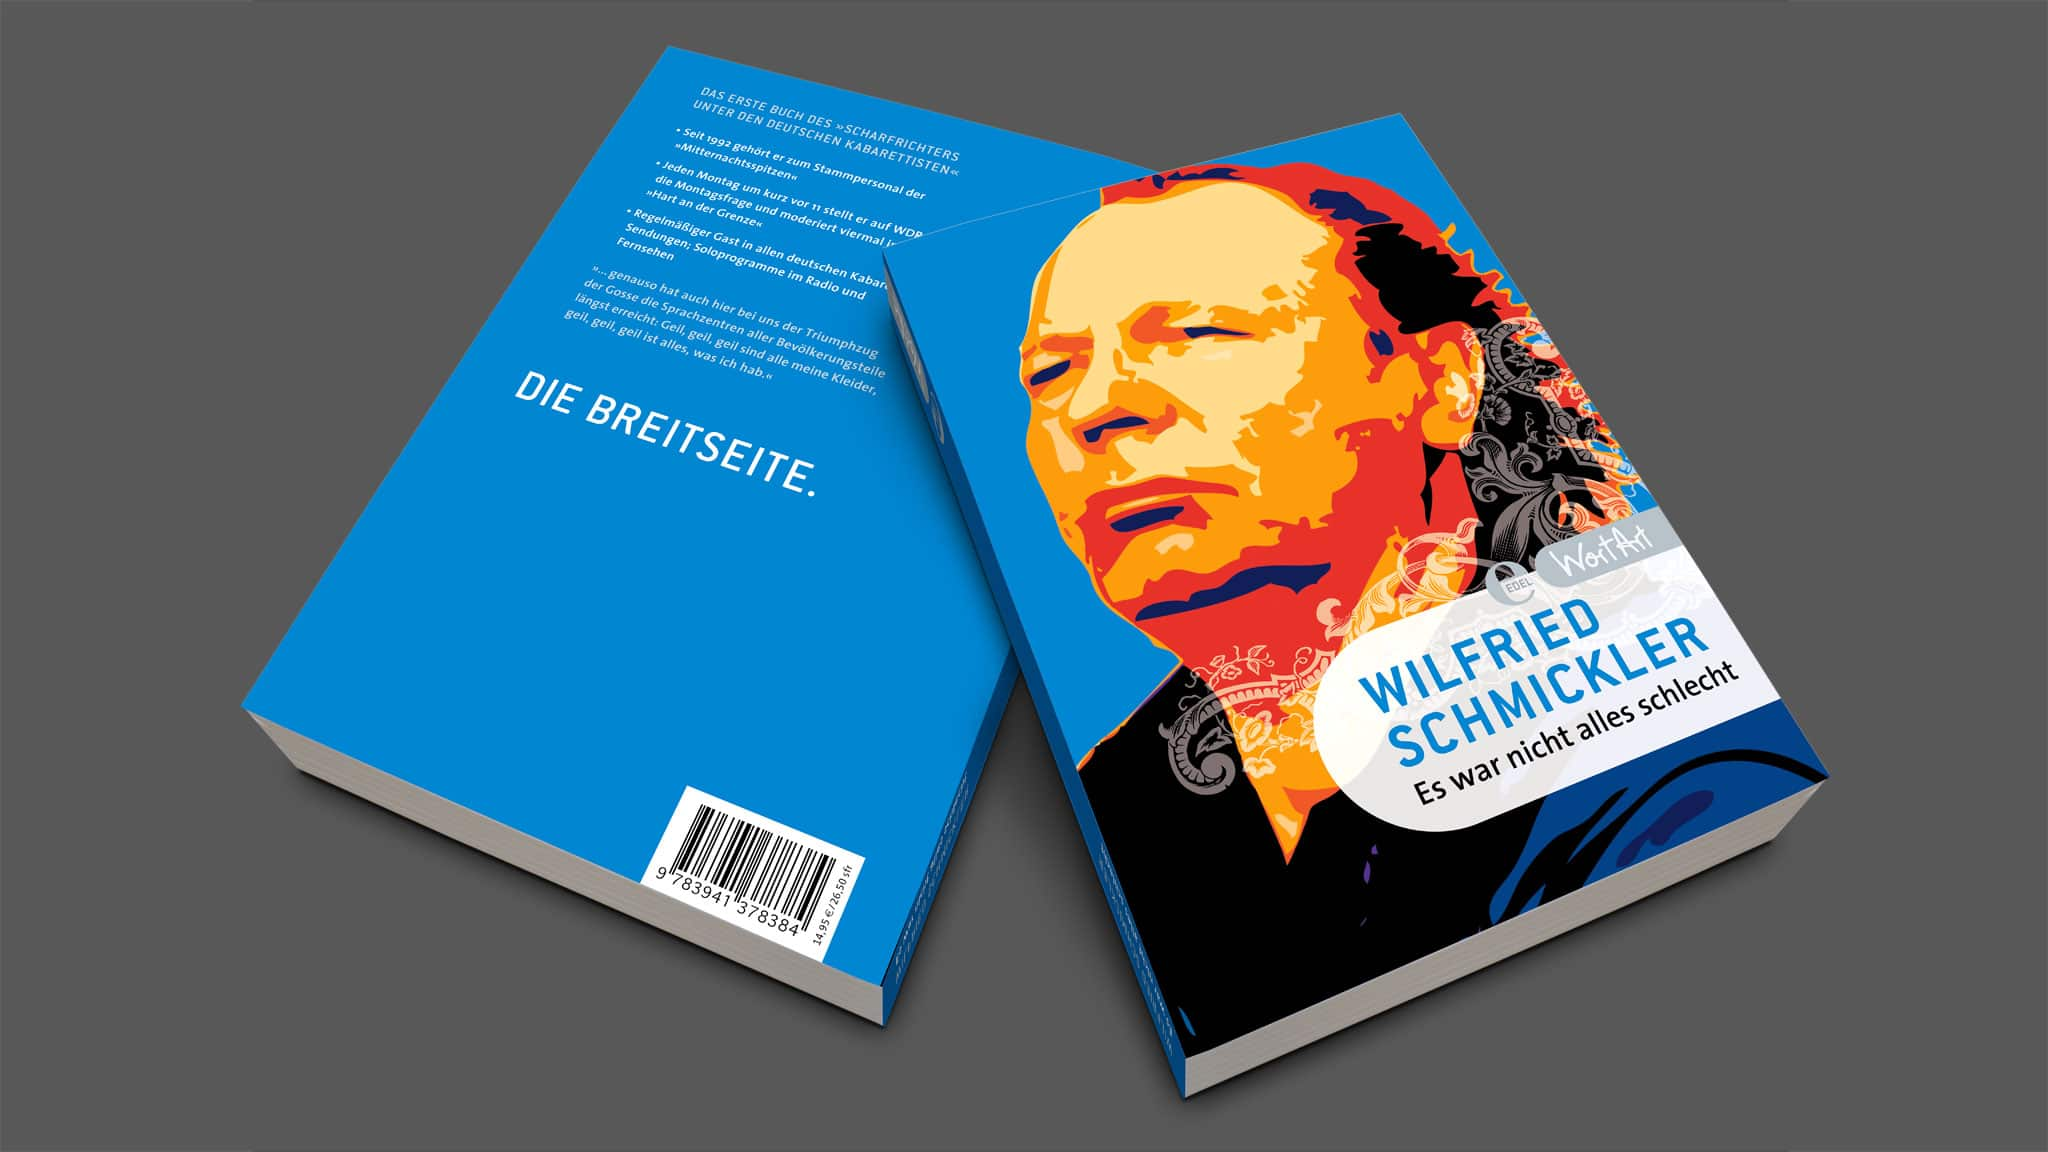 Buchcover Design Wortart